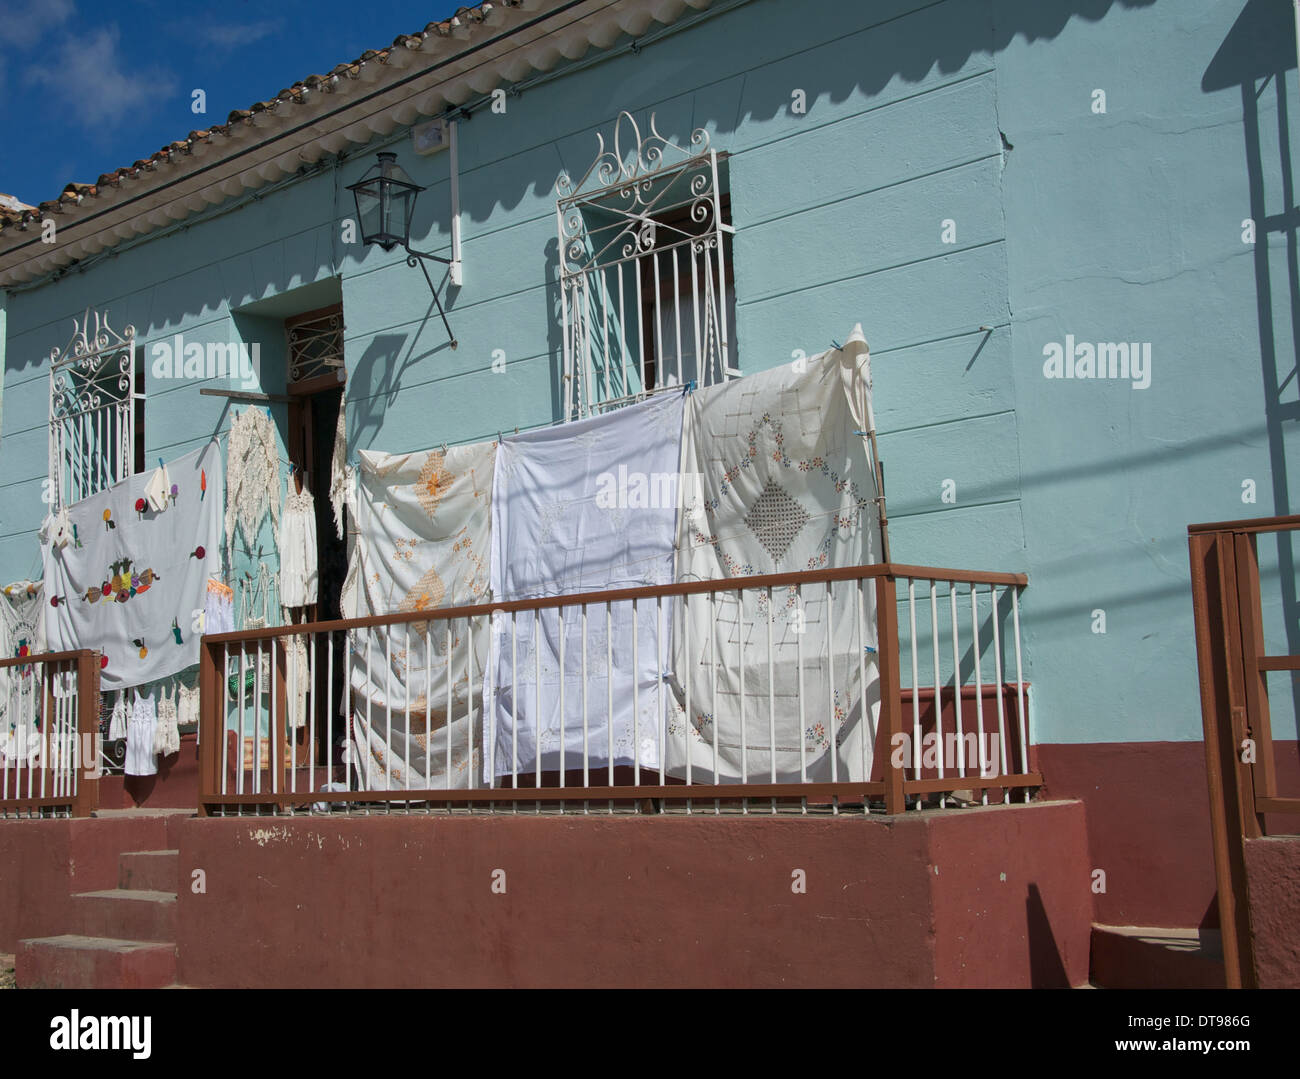 Hand-made tablecloths for sale, Trinidad, Cuba - Stock Image